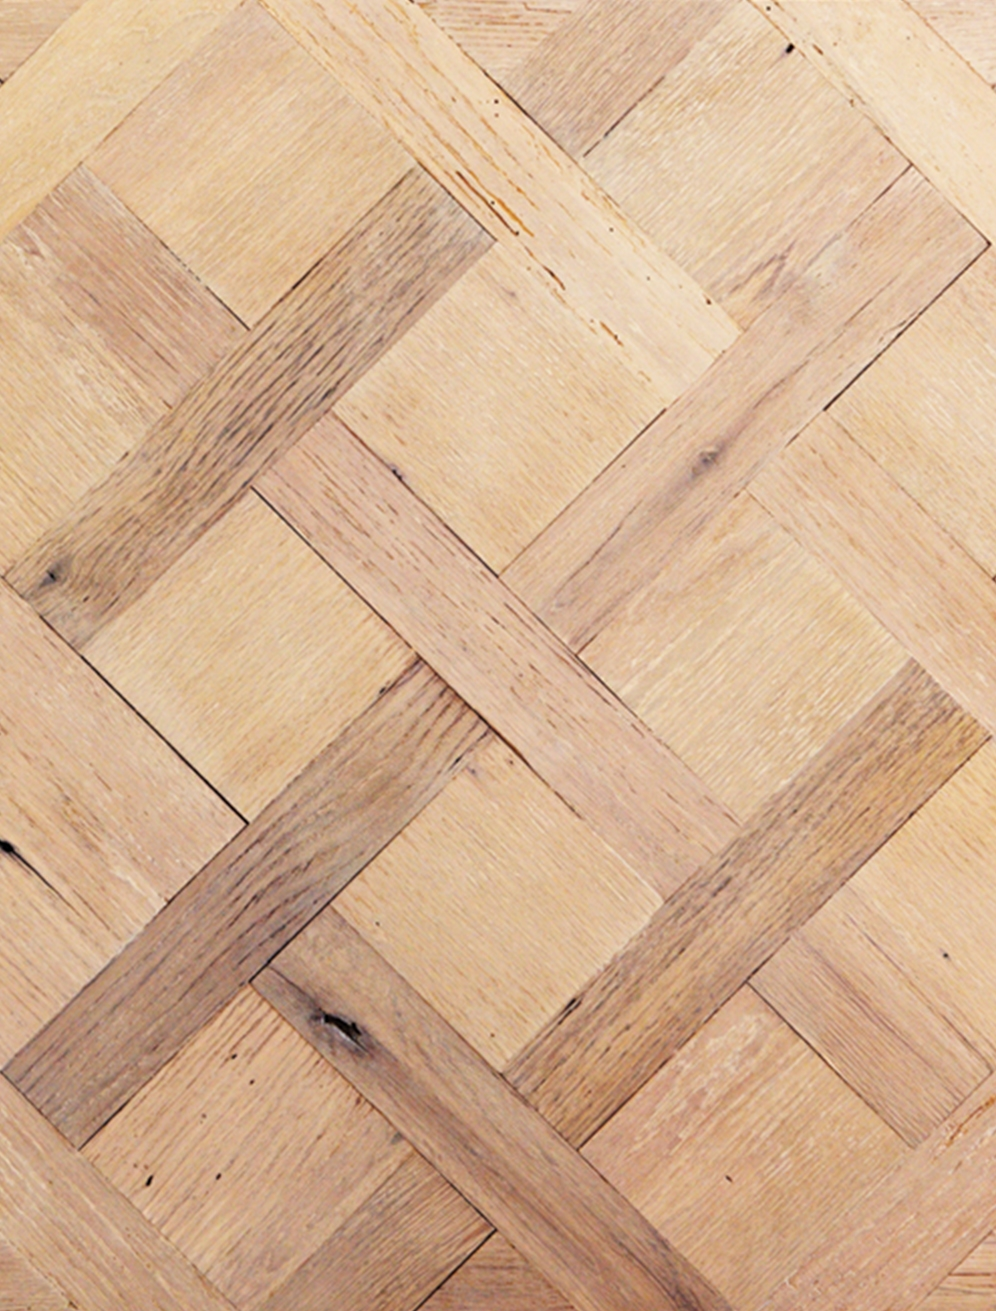 Reclaimed Mixed Oak Hardwood Flooring [Parquet De Versailles]